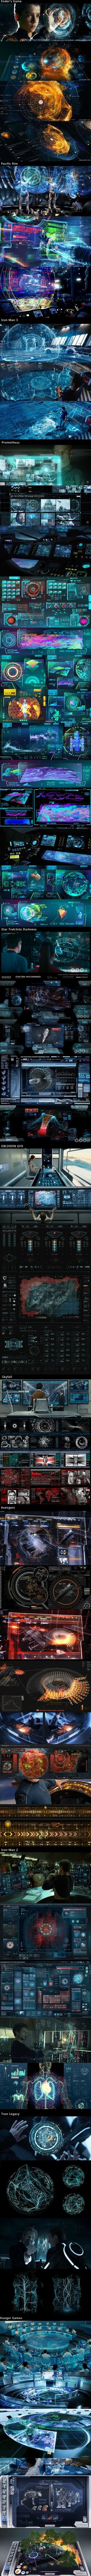 UI IxD SciFi Interface n' Design [] User Interface [Ender's Game | Pacific Rim | Prometheus | IronMan3]